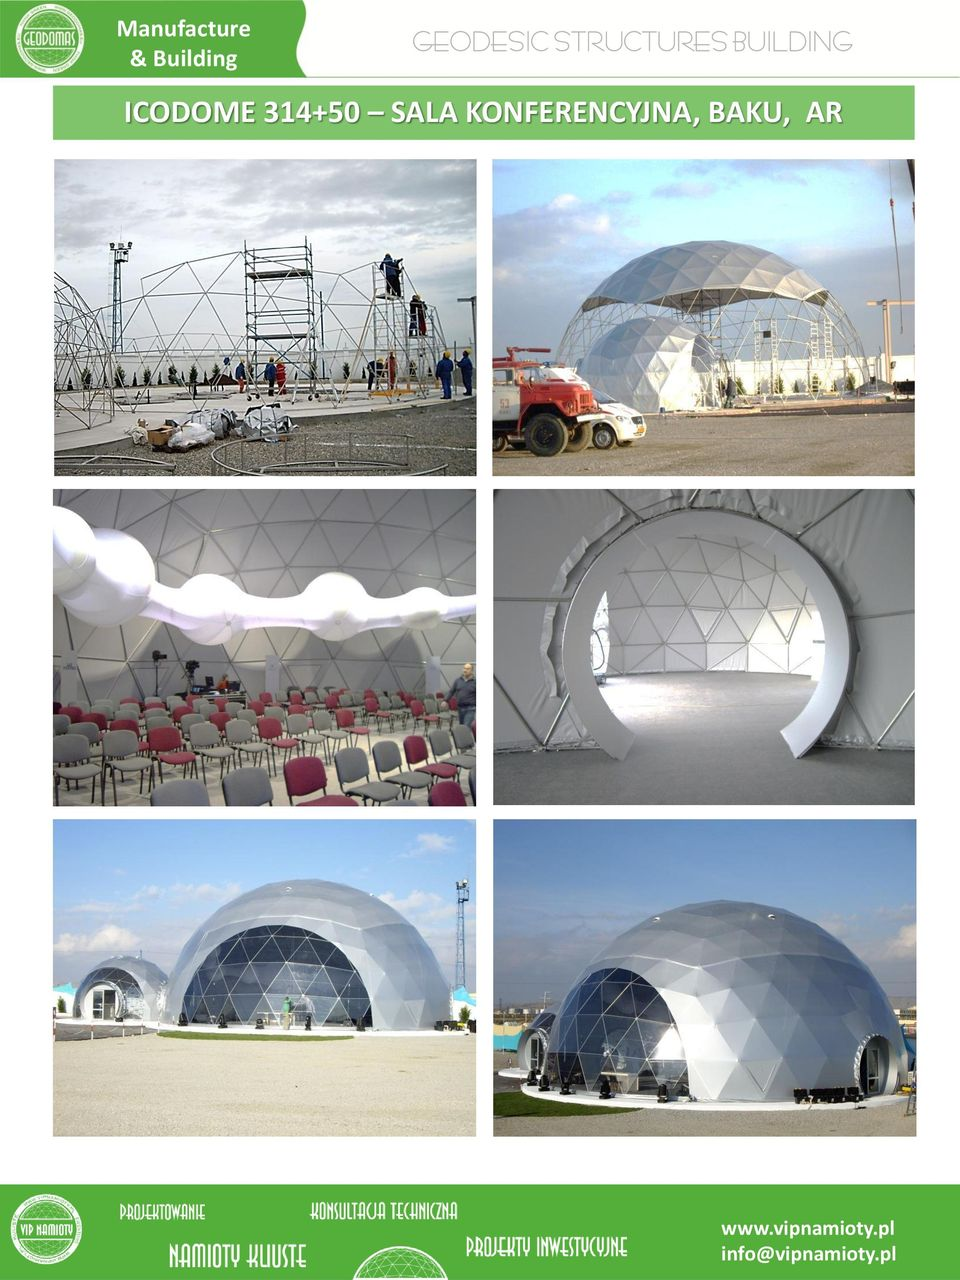 BUILDING ICODOME 314+50